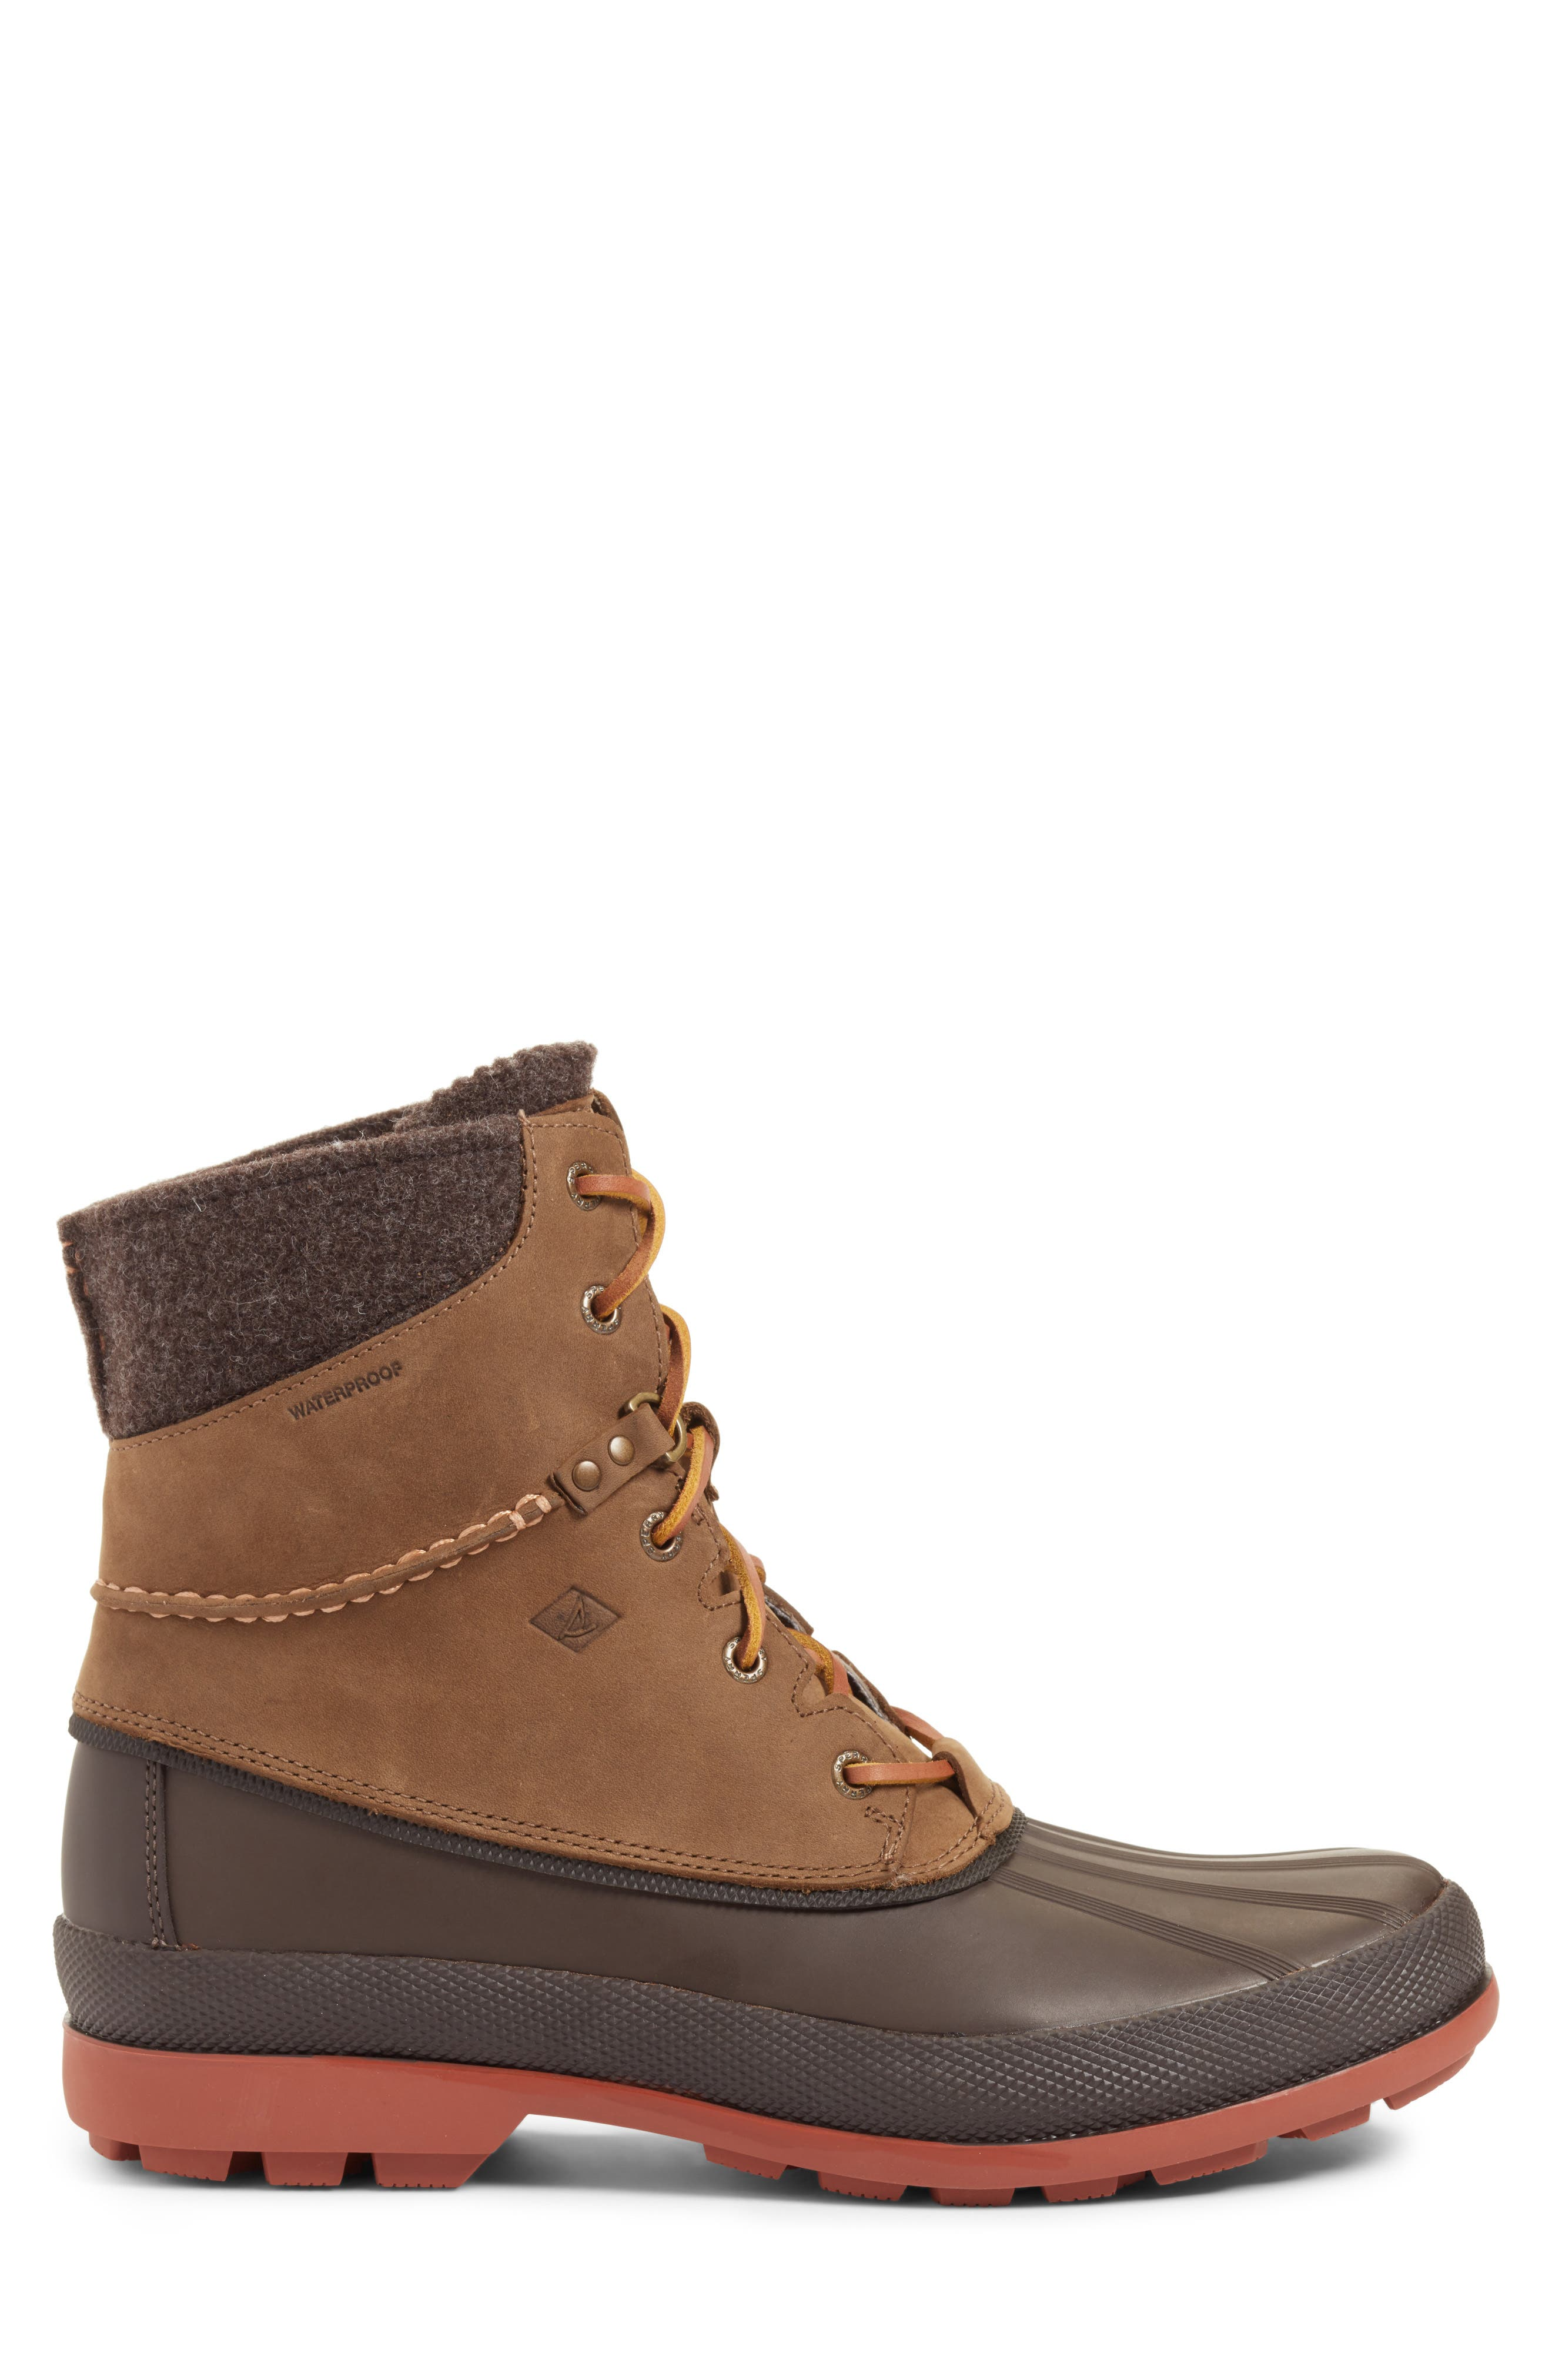 Cold Bay Duck Boot,                             Alternate thumbnail 3, color,                             201